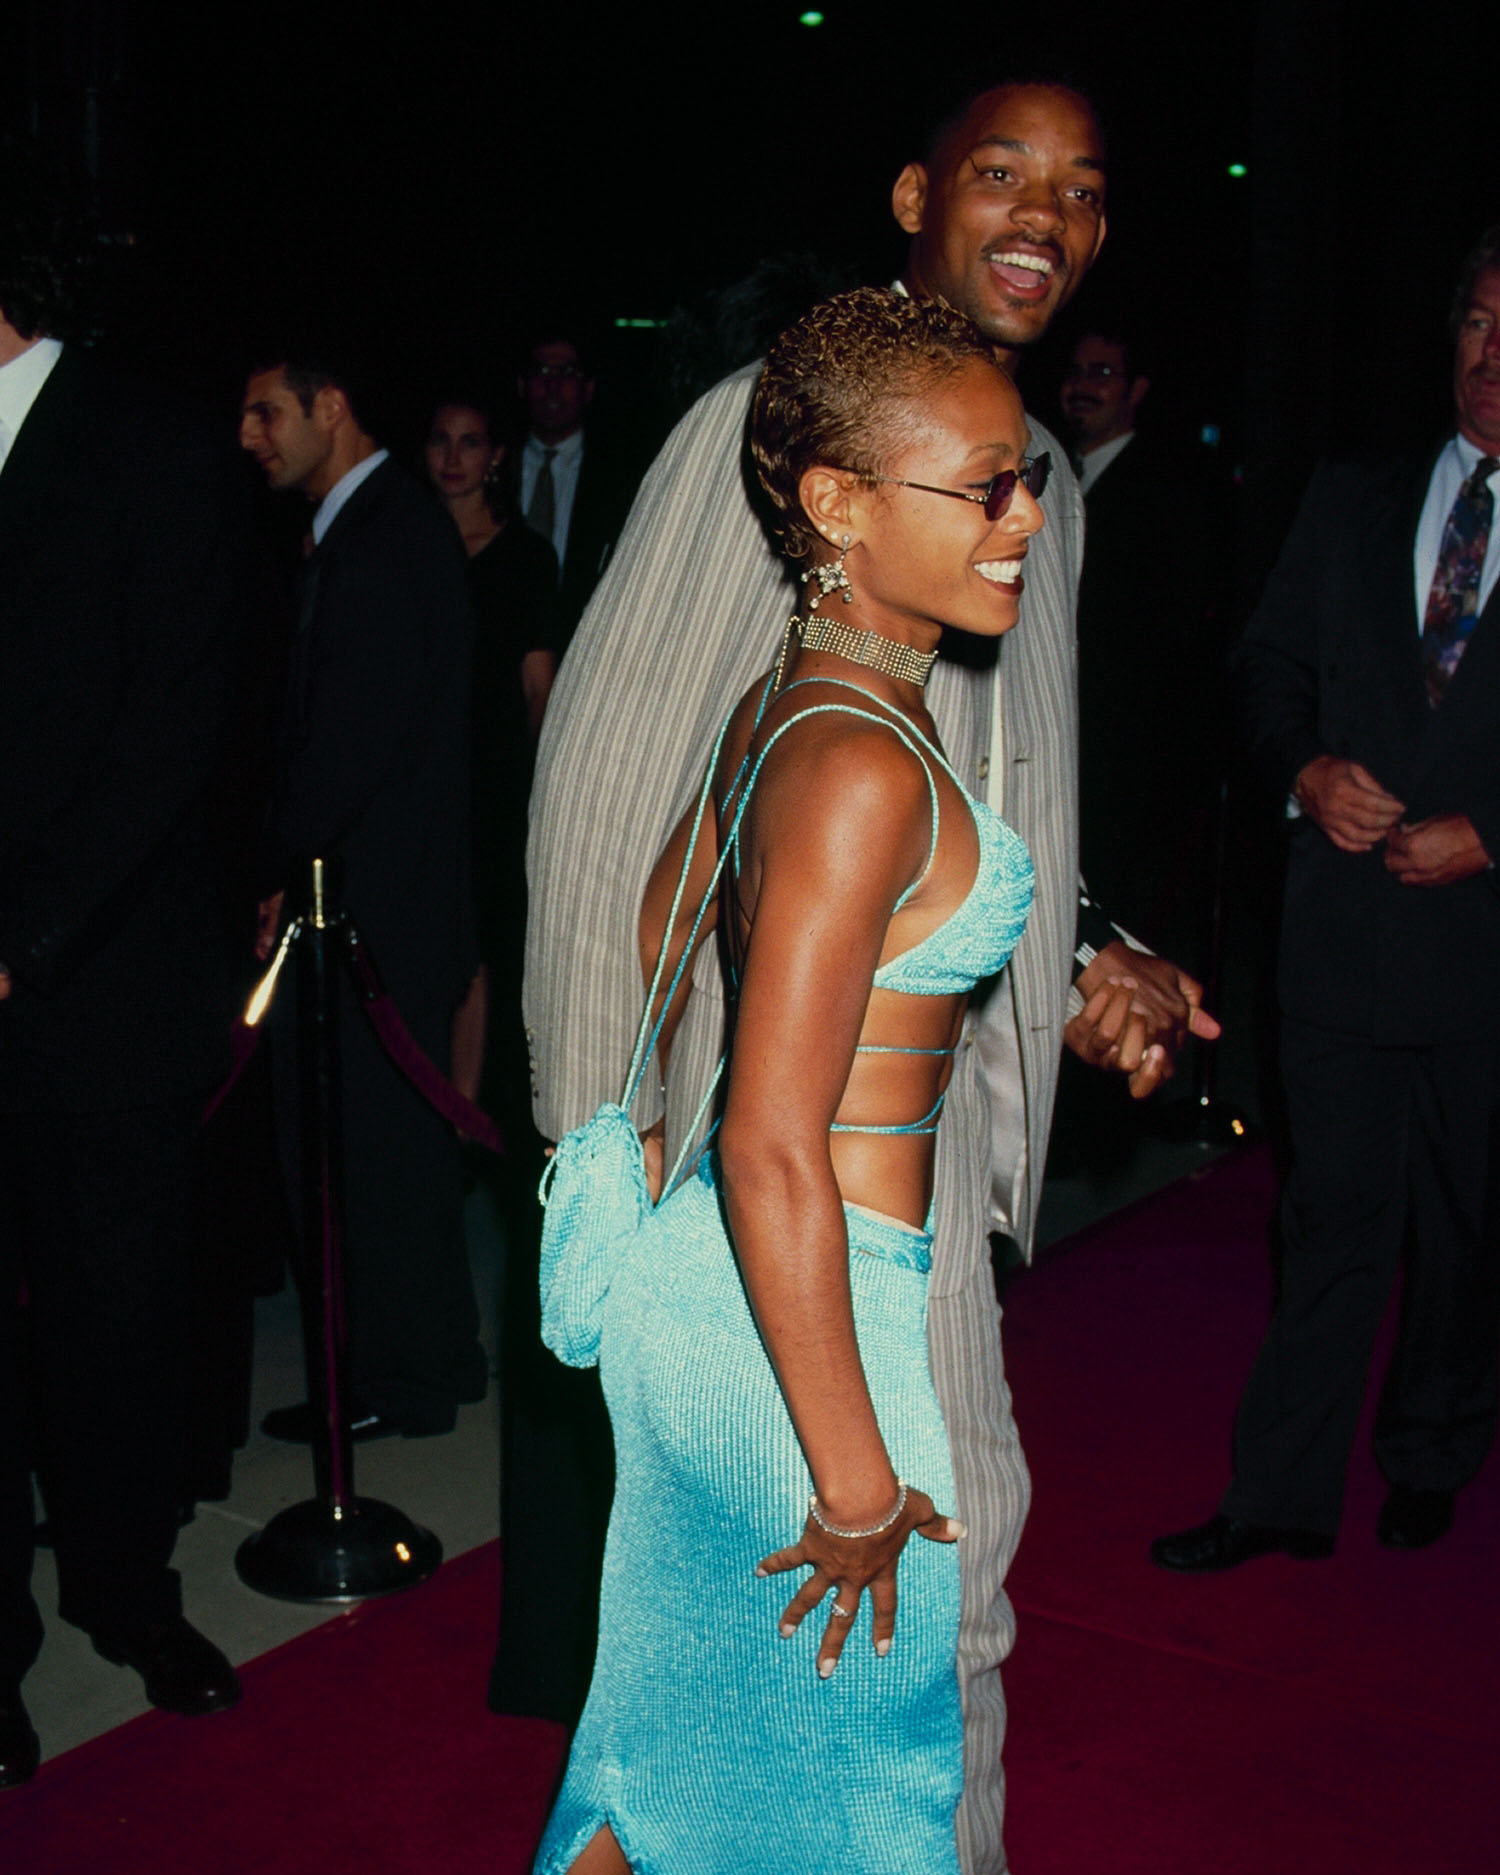 throwbacks-will-smith-jada-pinkett-smith-0616.jpg